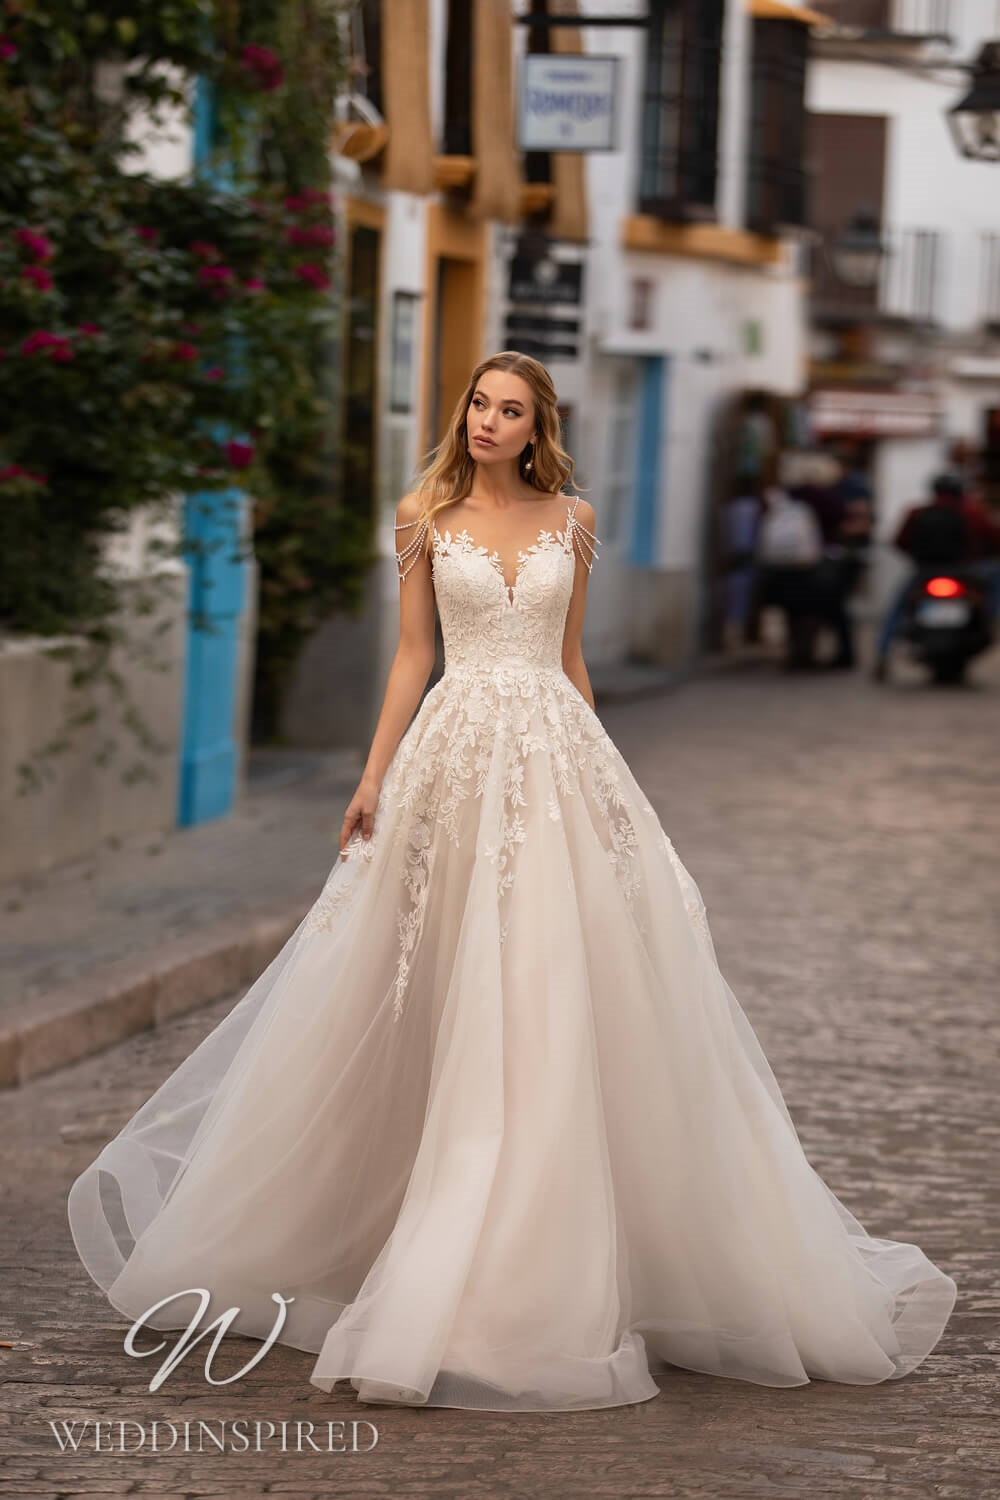 An Essential by Lussano 2021 romantic lace and tulle princess wedding dress